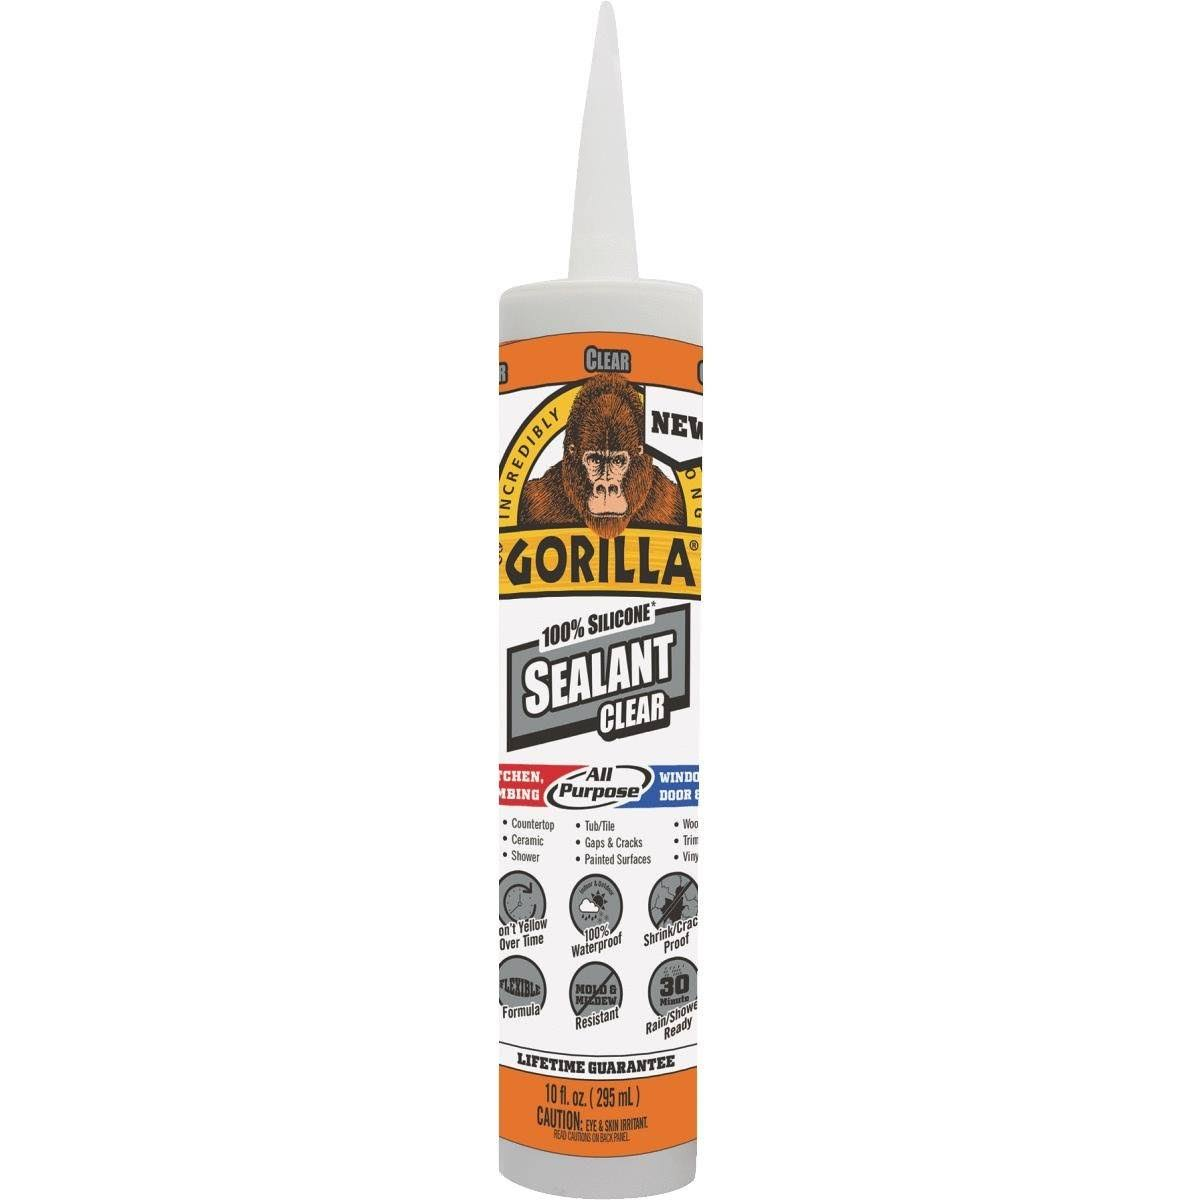 Gorilla Clear 100 Silicone Sealant - 10oz